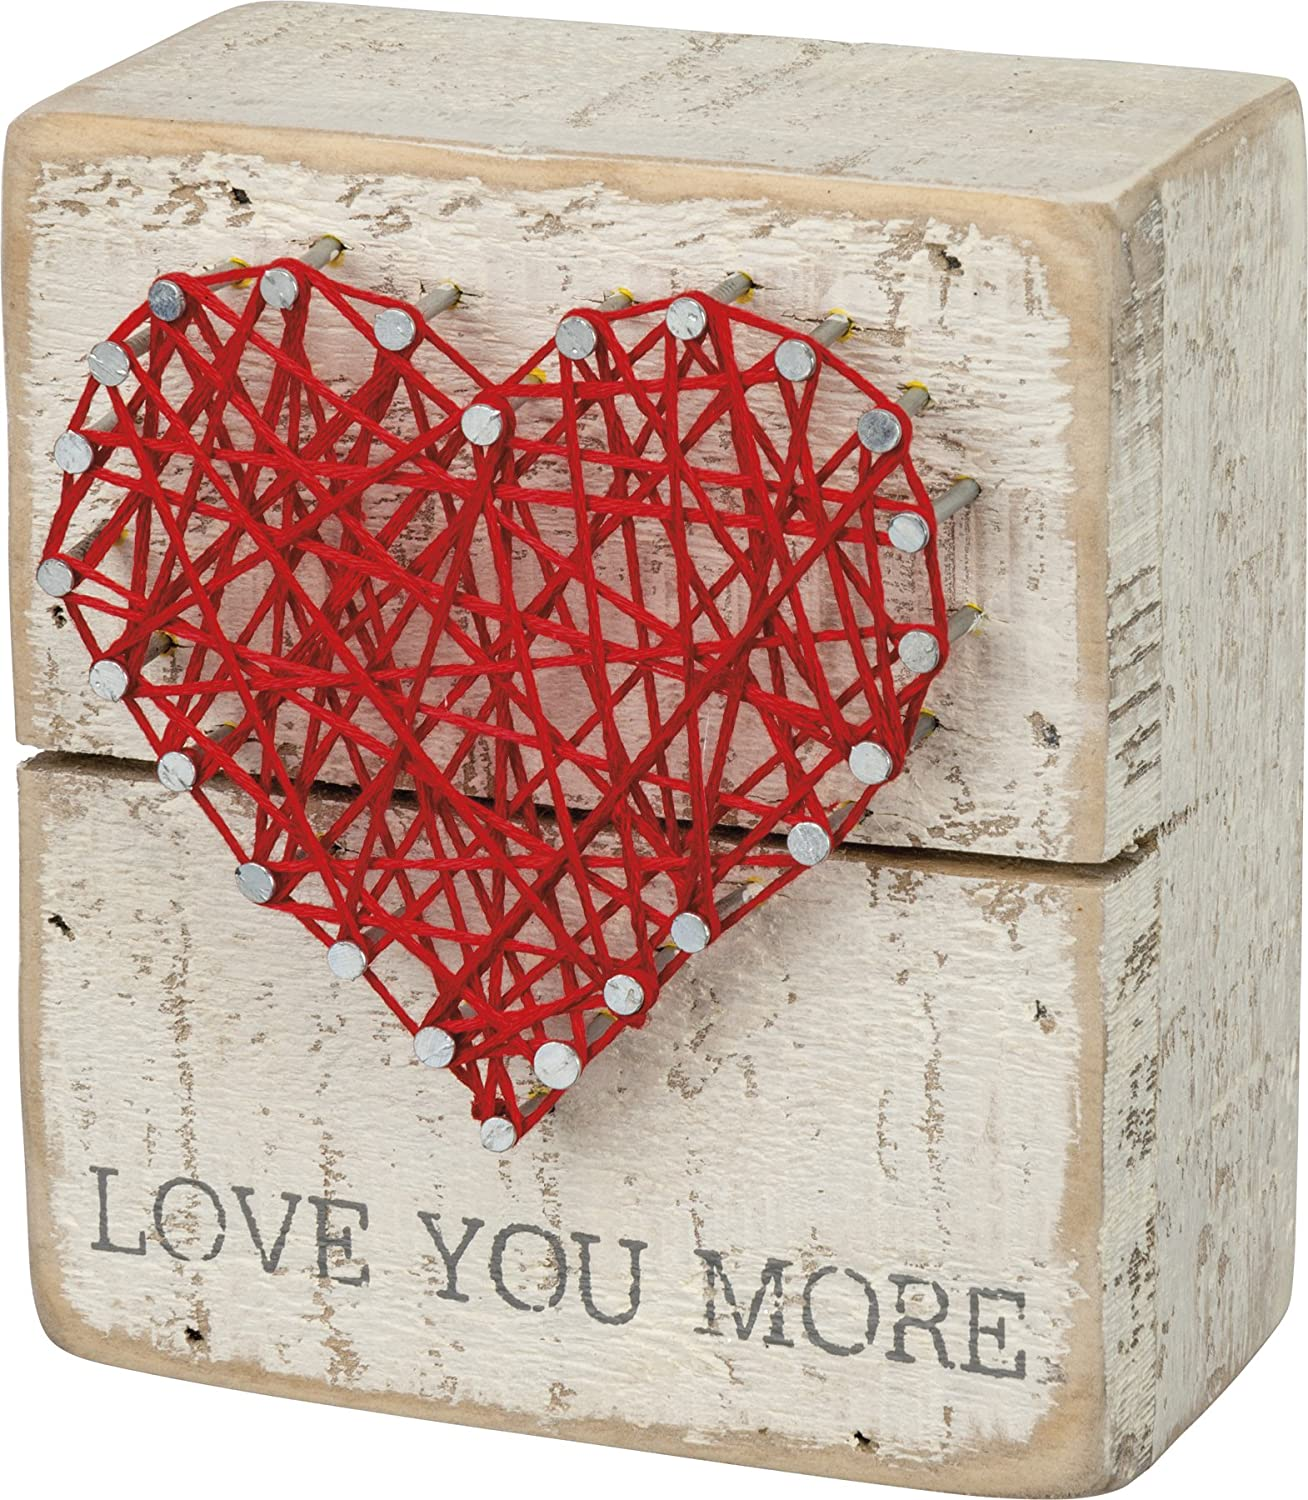 "Primitives by Kathy 34248 Rustic White String Art Box Sign, 3.5"" x 4"", Love You More"